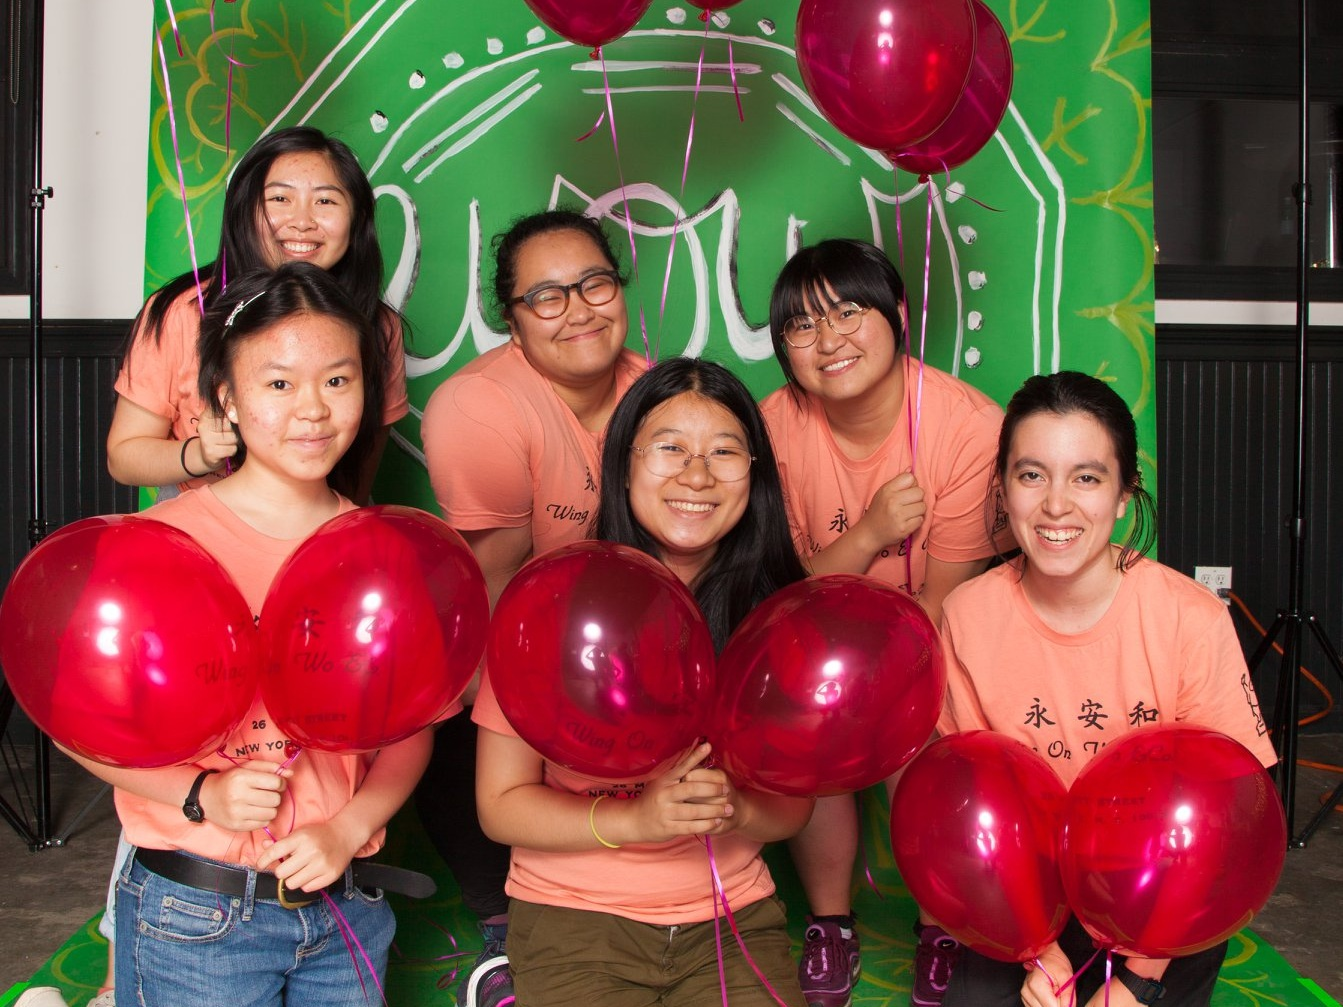 W.O.W. Interns at the 3 Year Anniversary Celebration!  (back row, from left to right: Fanny Li, Yuki Haraguchi, Em He; front row, from left to right: Emma Tse, Alicia Kwok, Jade Levine)